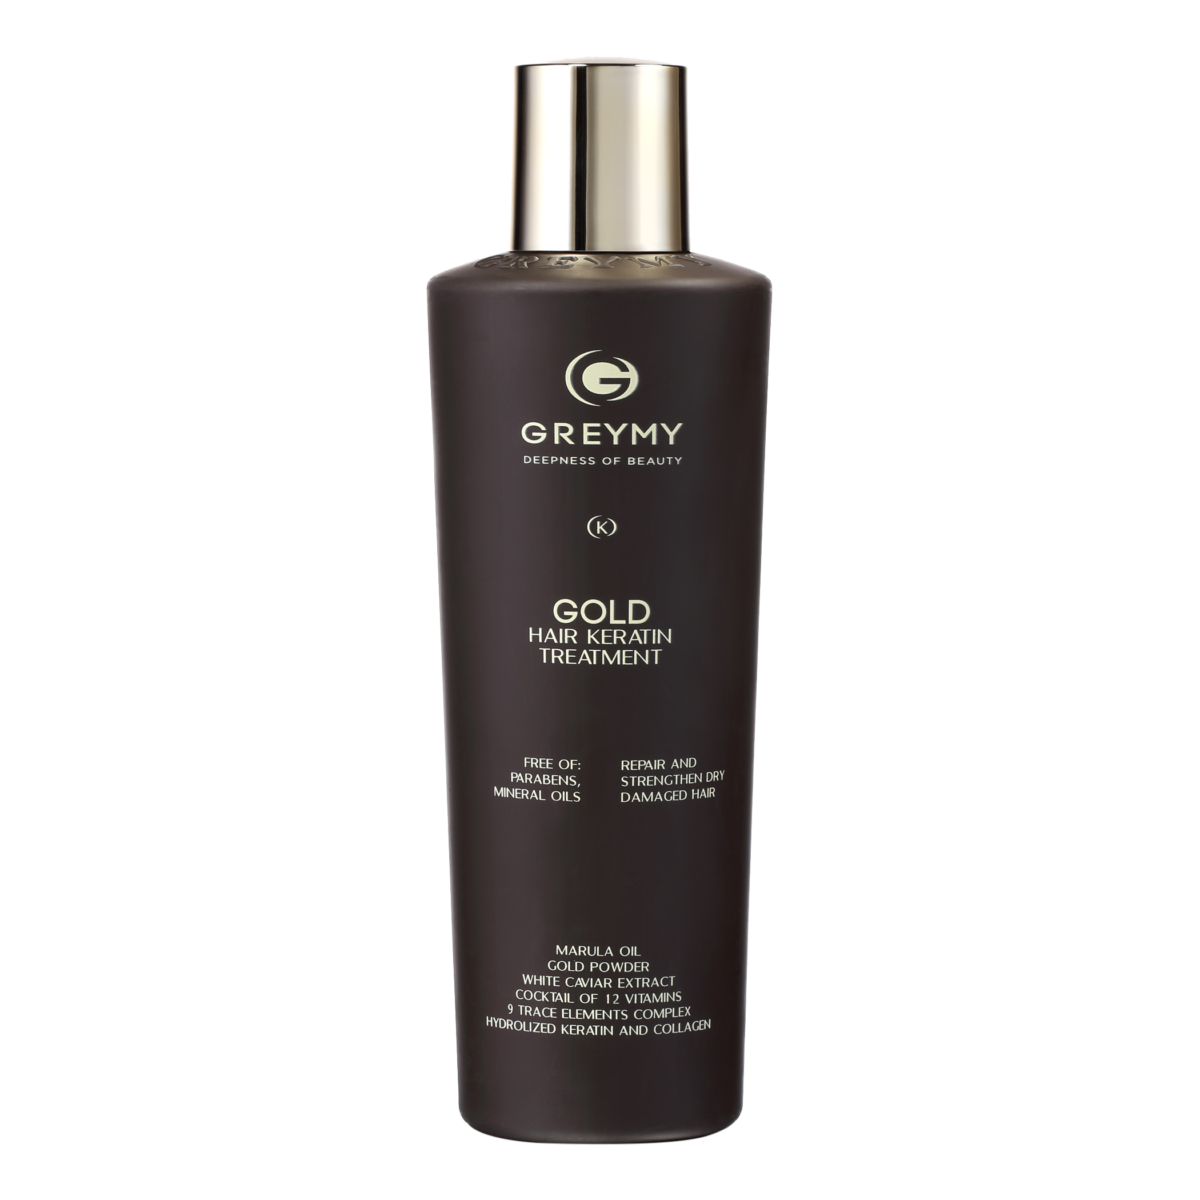 10 IMG 9373 1200x1200 - GREYMY GOLD HAIR KERATIN TREATMENT